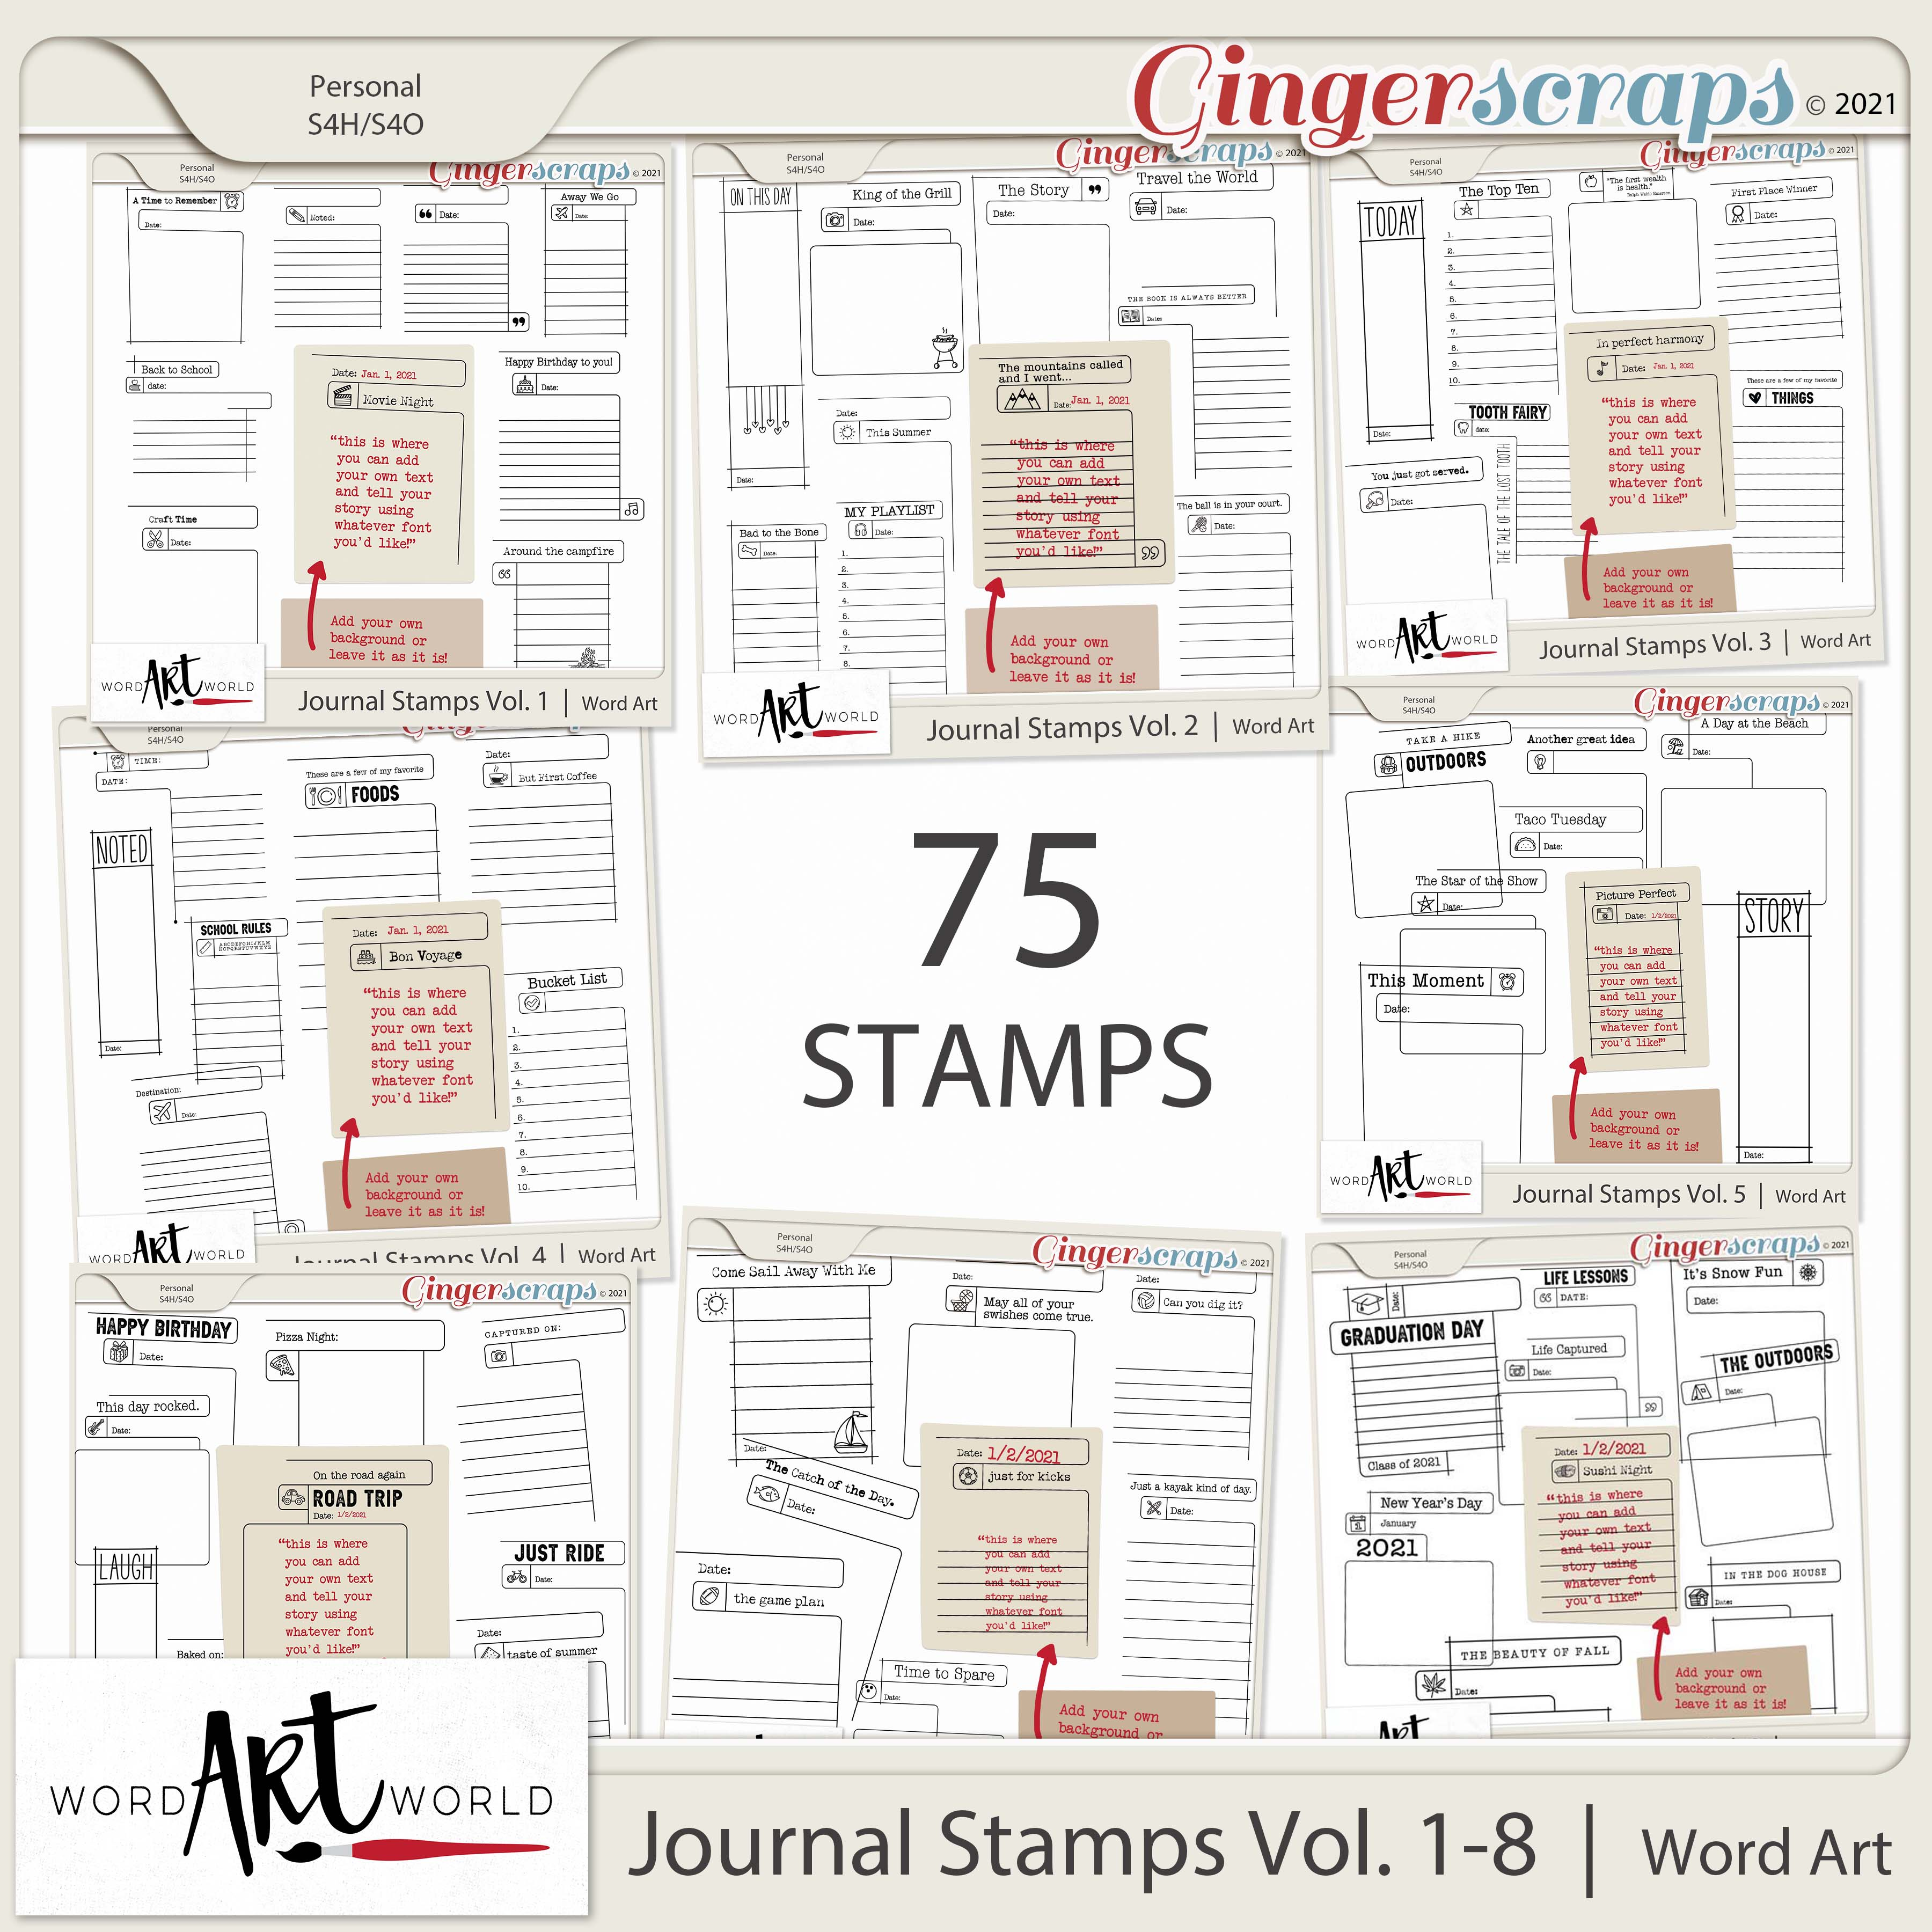 Journal Stamps Vol. 1-8 Word Art